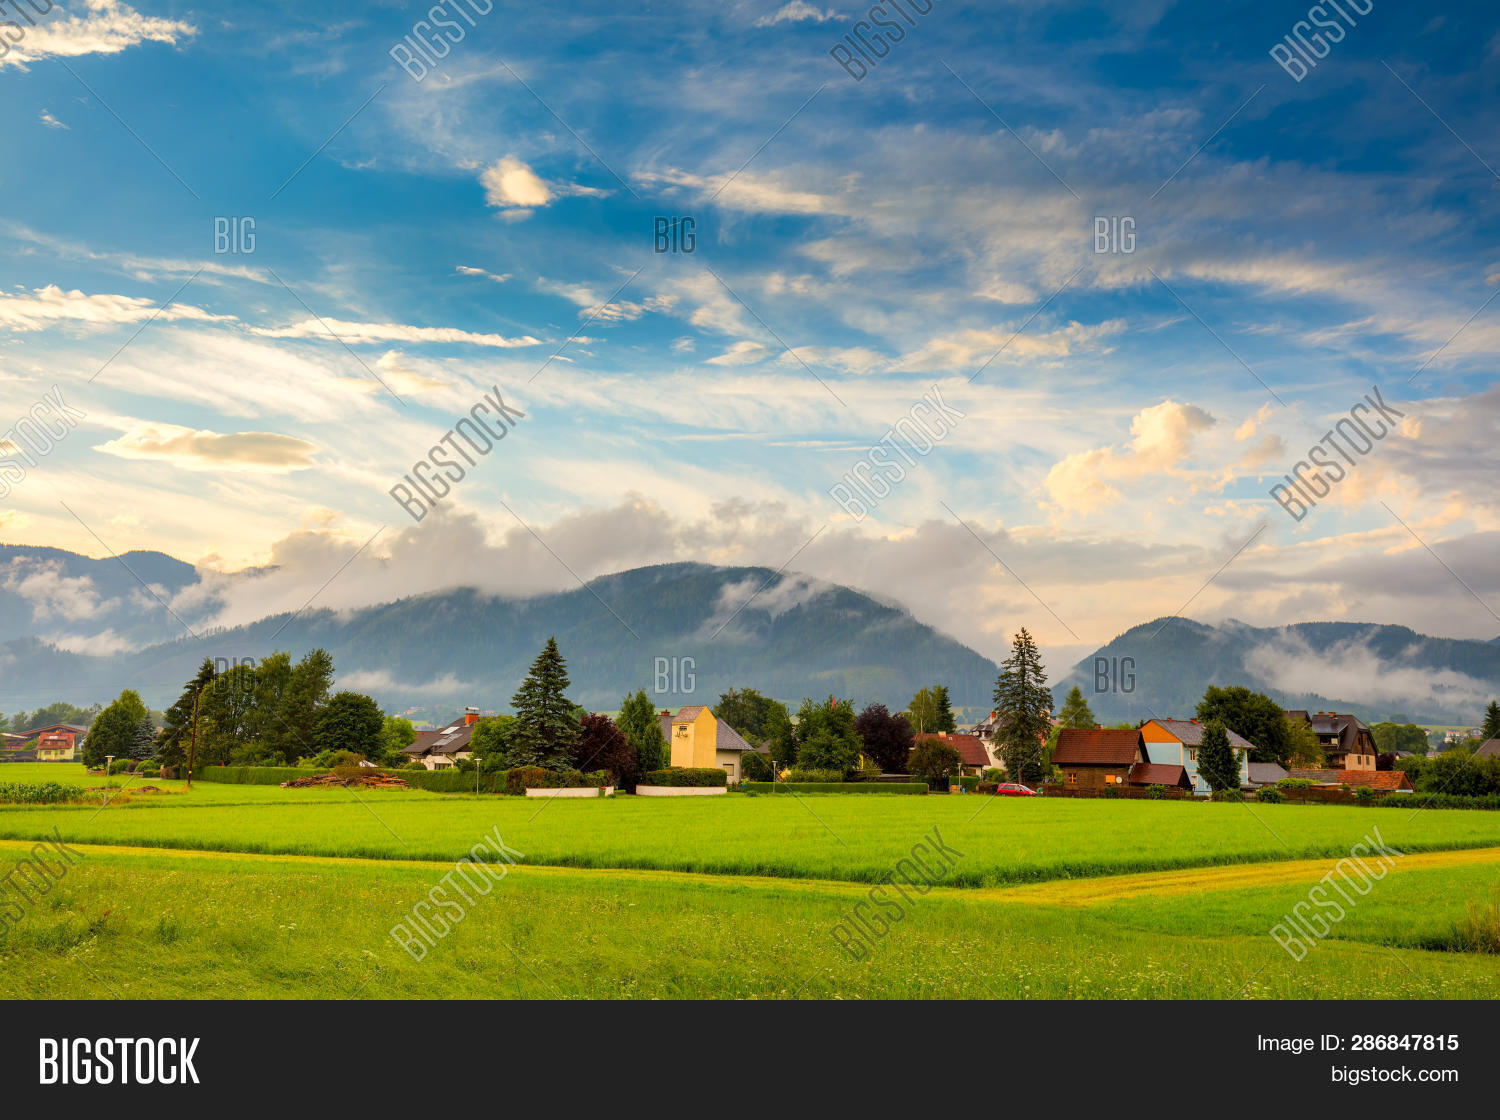 Picturesque Small Town Image & Photo (Free Trial) | Bigstock